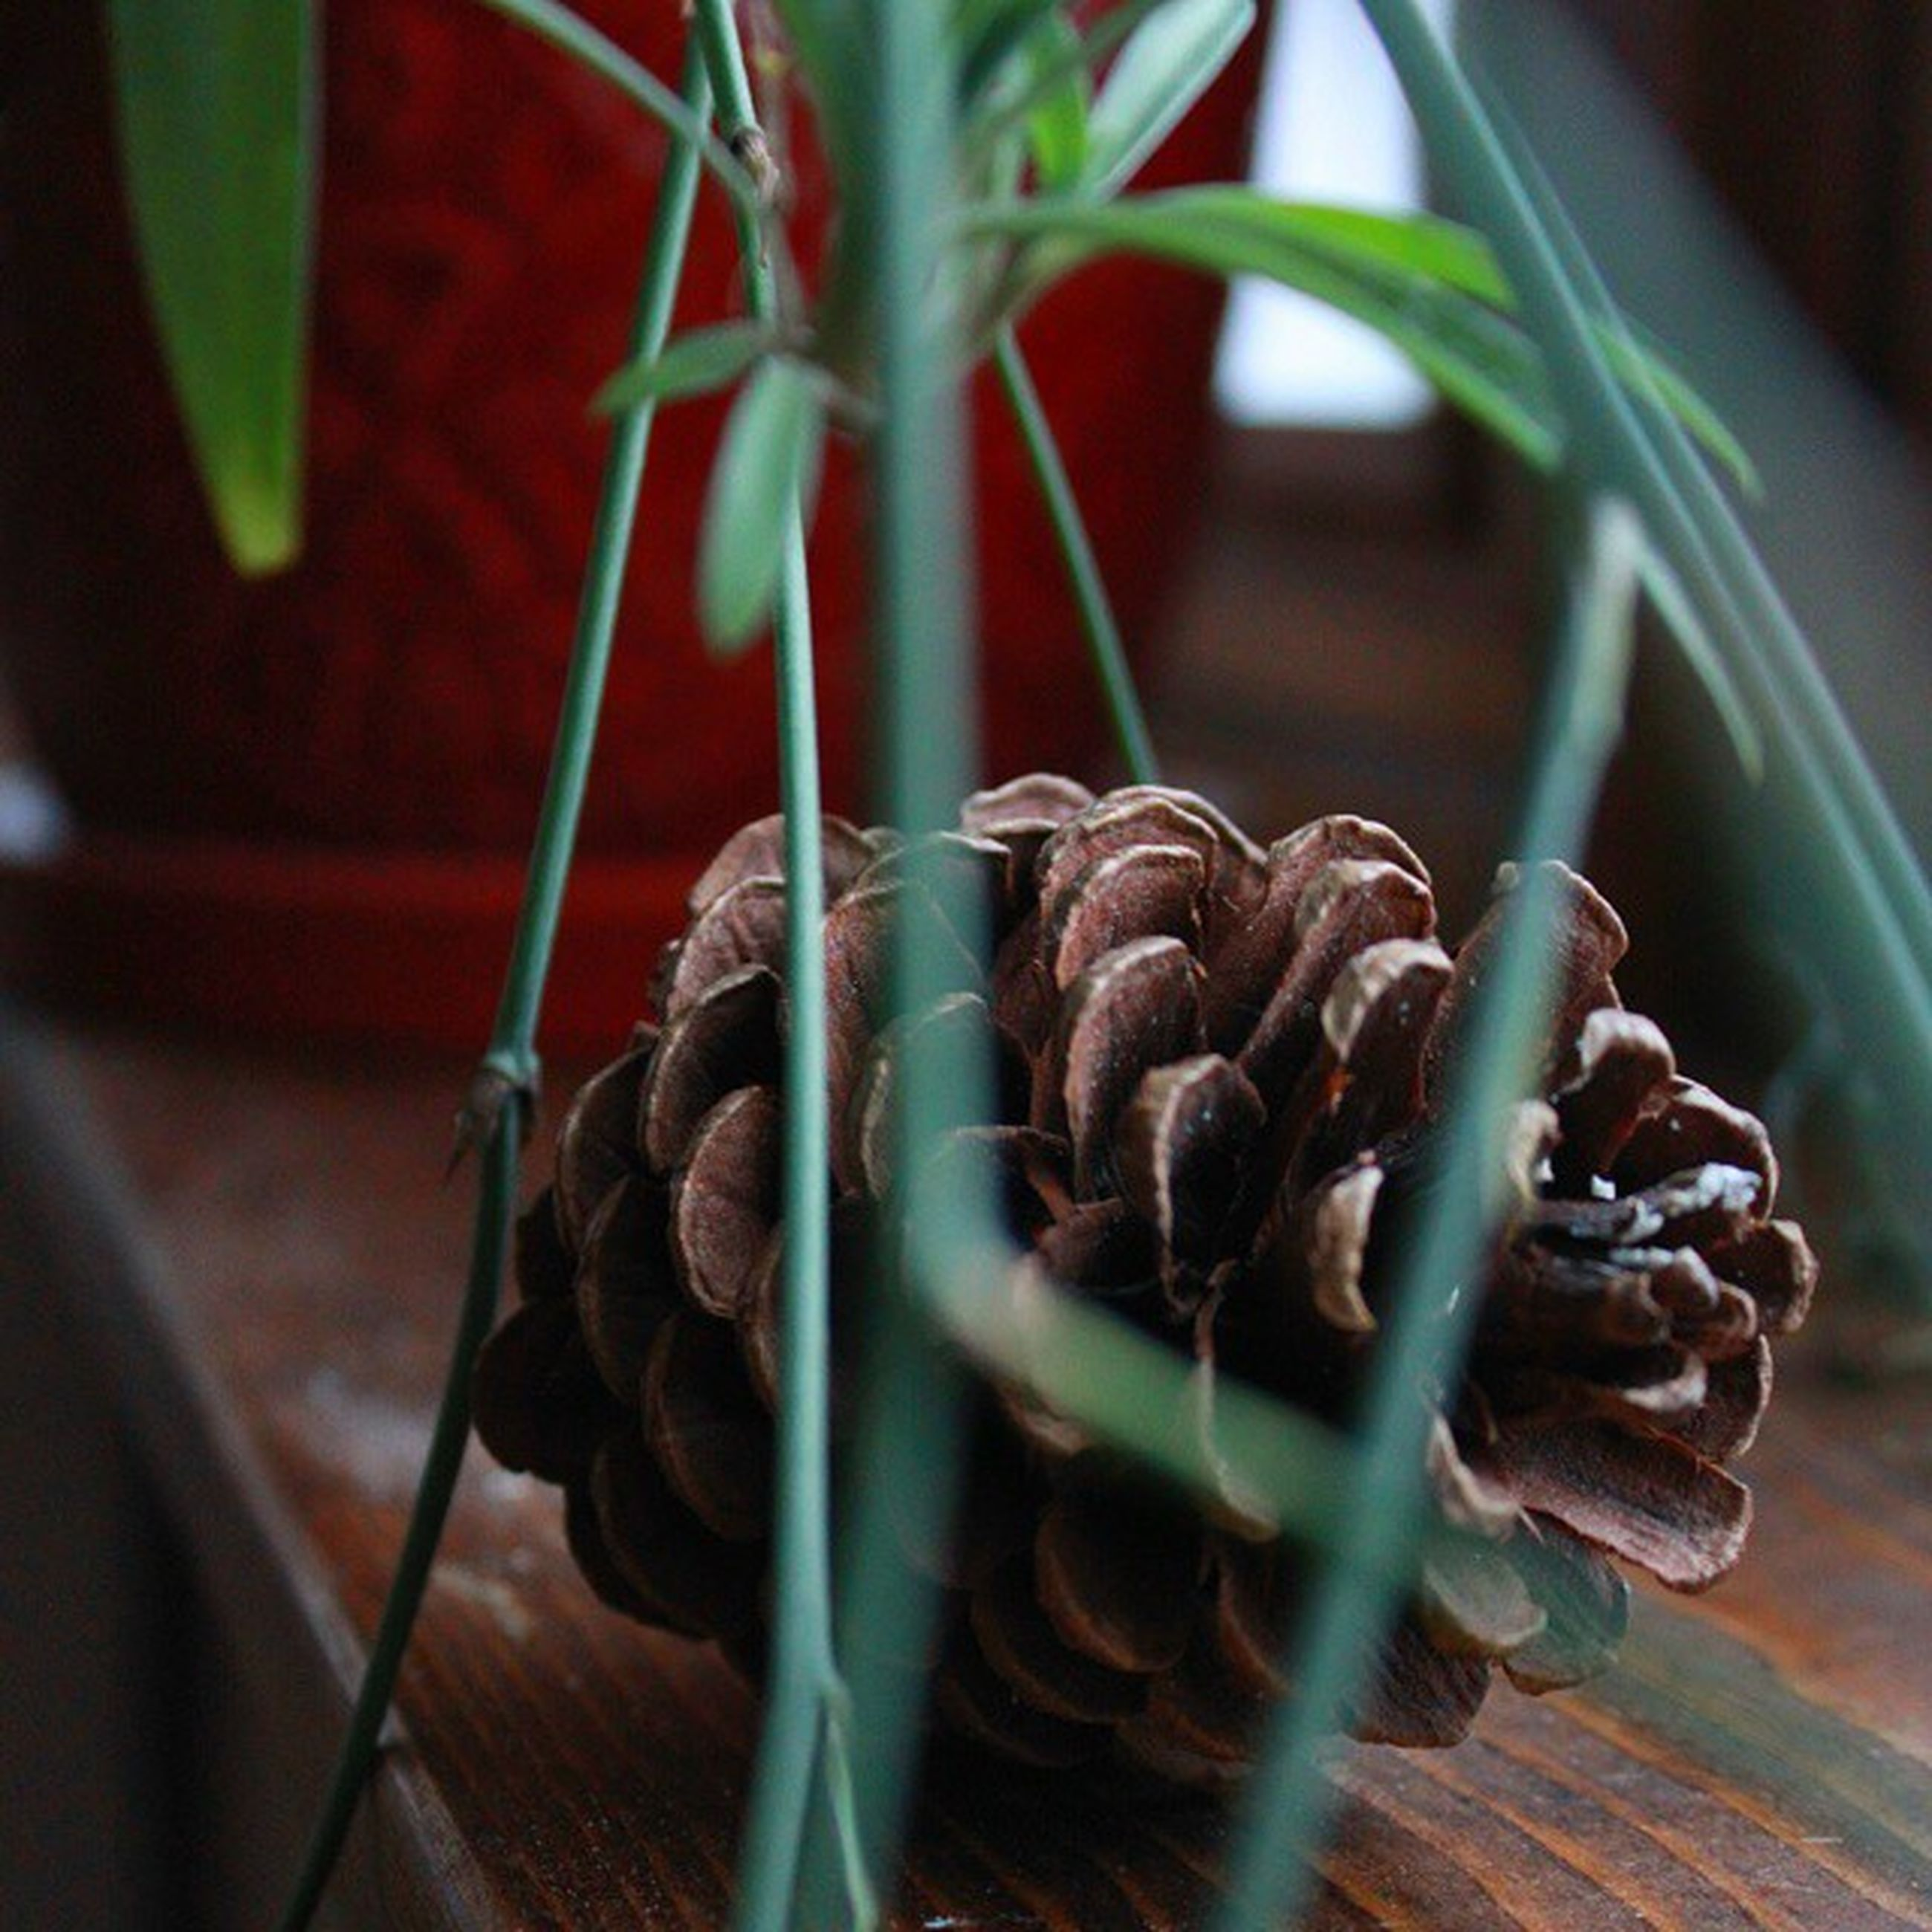 close-up, focus on foreground, metal, still life, indoors, selective focus, plant, no people, day, leaf, rope, growth, tied up, sunlight, metallic, high angle view, nature, hanging, brown